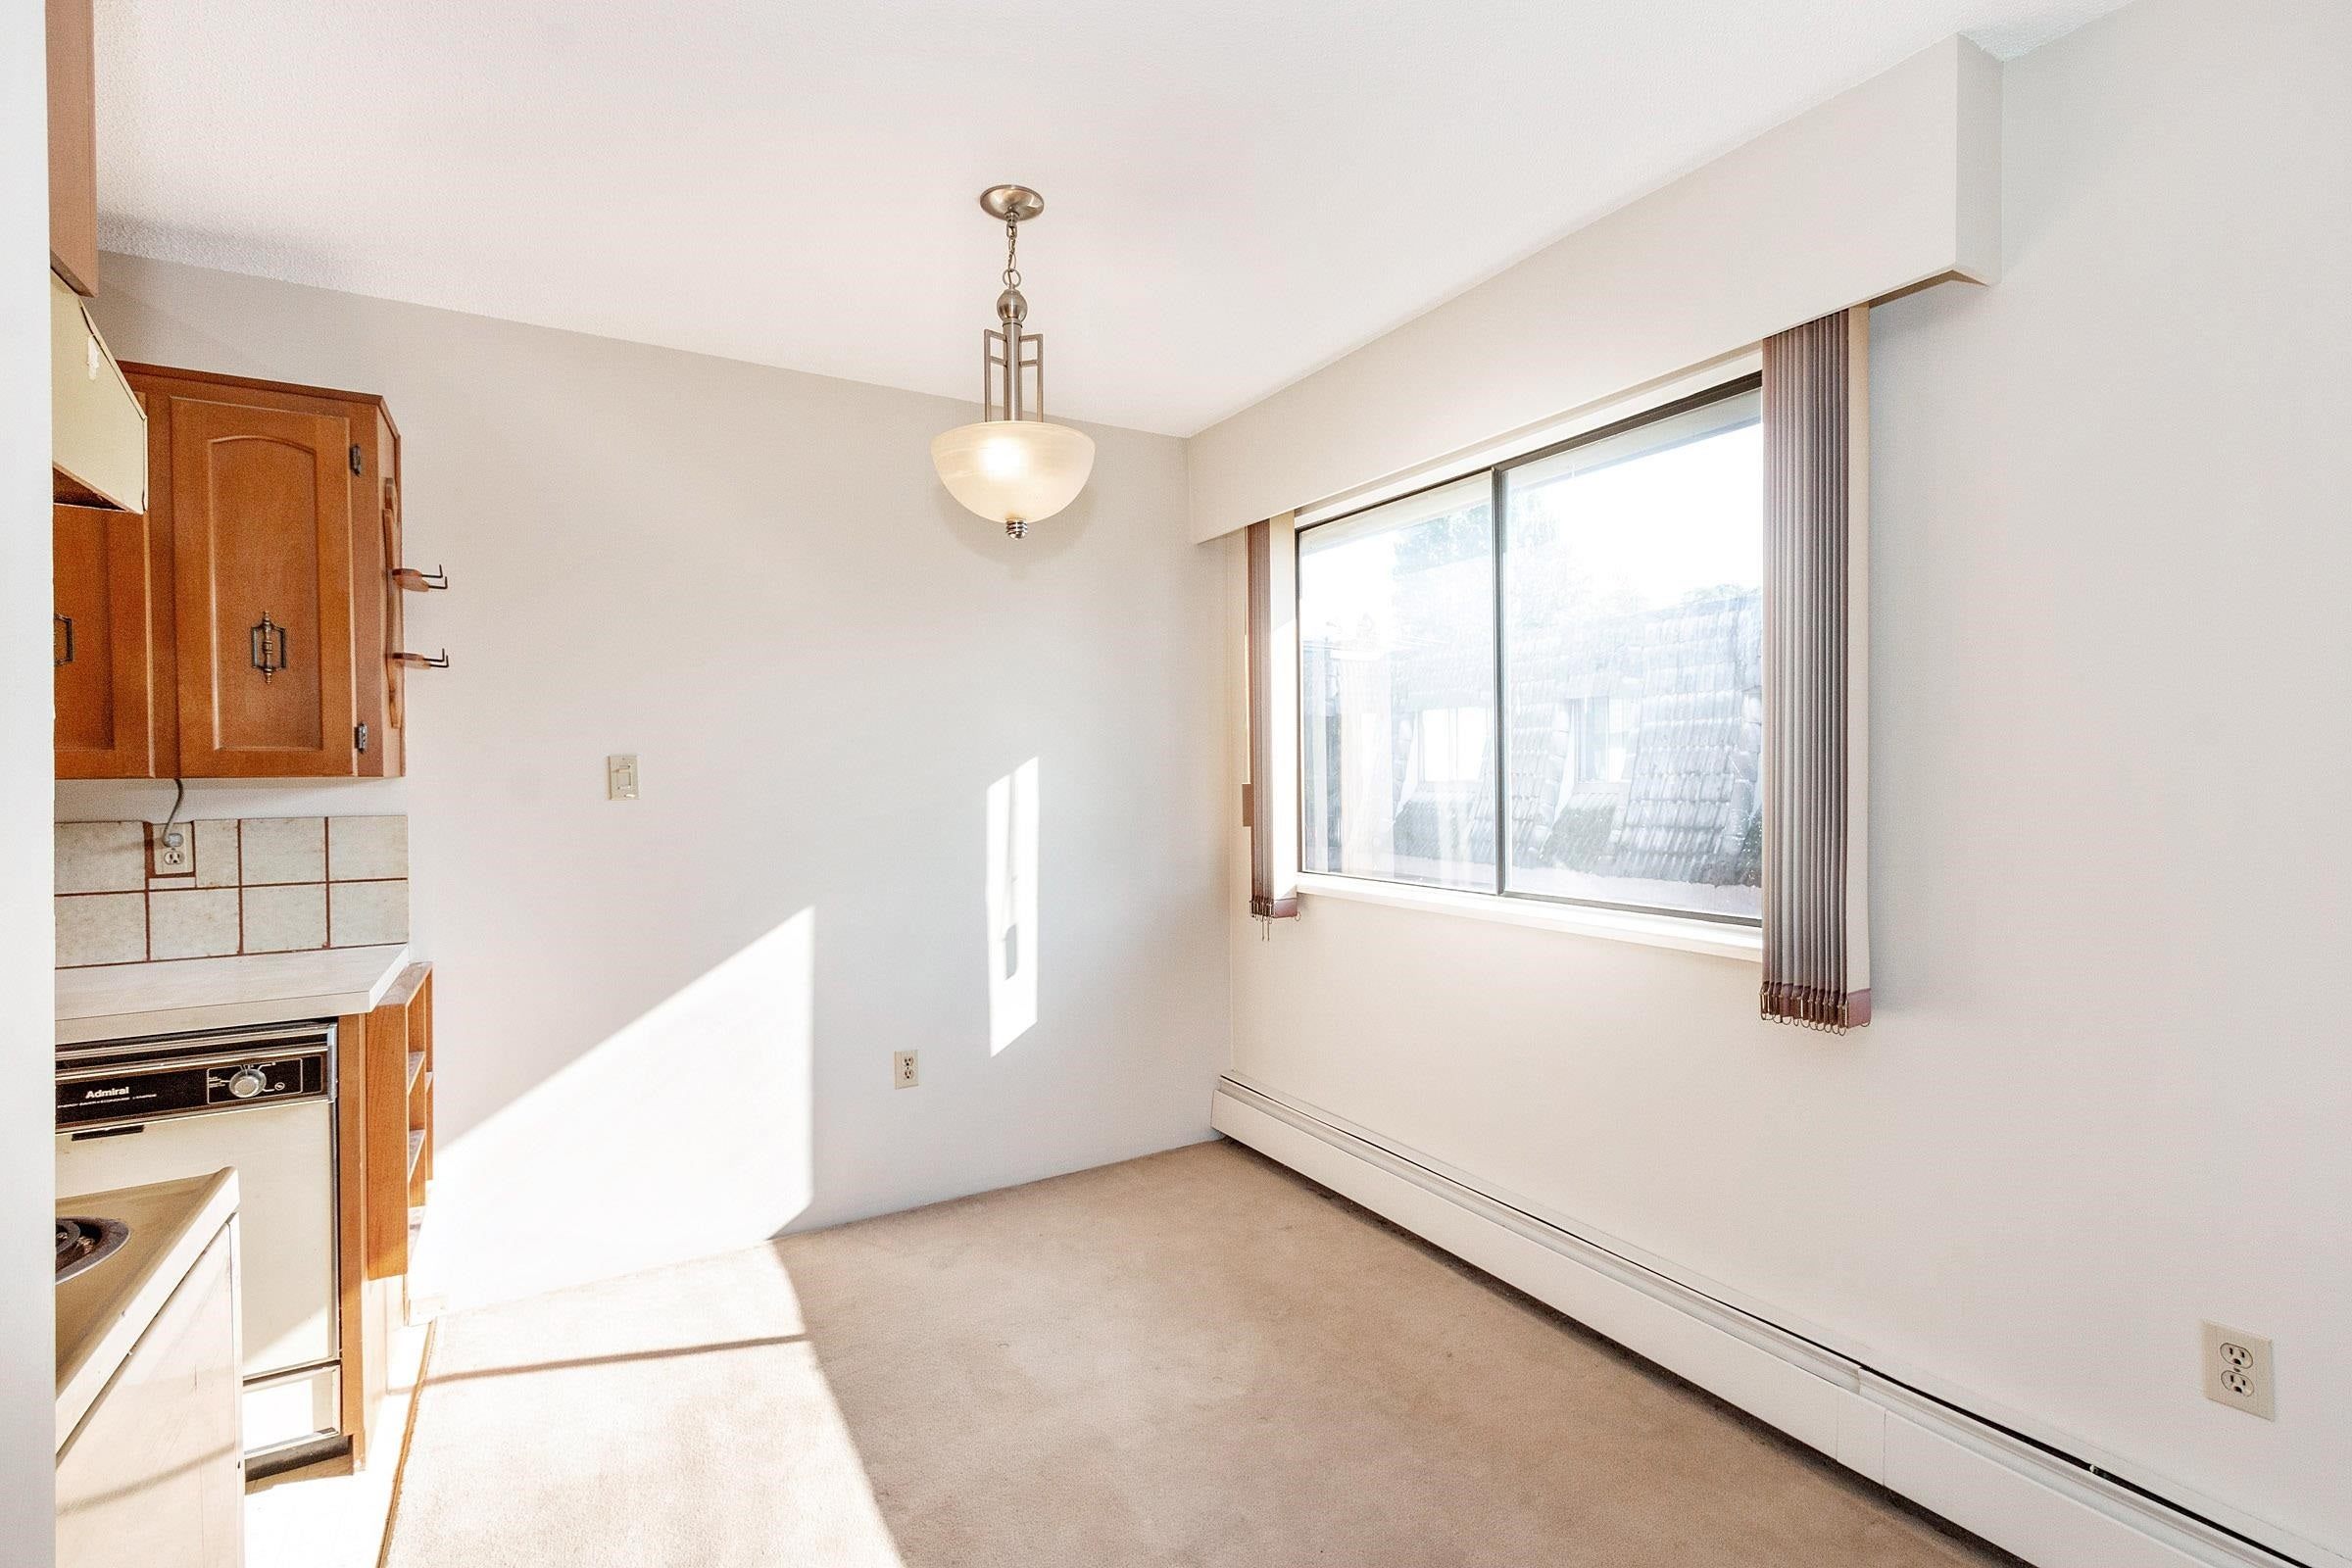 301 264 W 2ND STREET - Lower Lonsdale Apartment/Condo for sale, 2 Bedrooms (R2625527) - #10